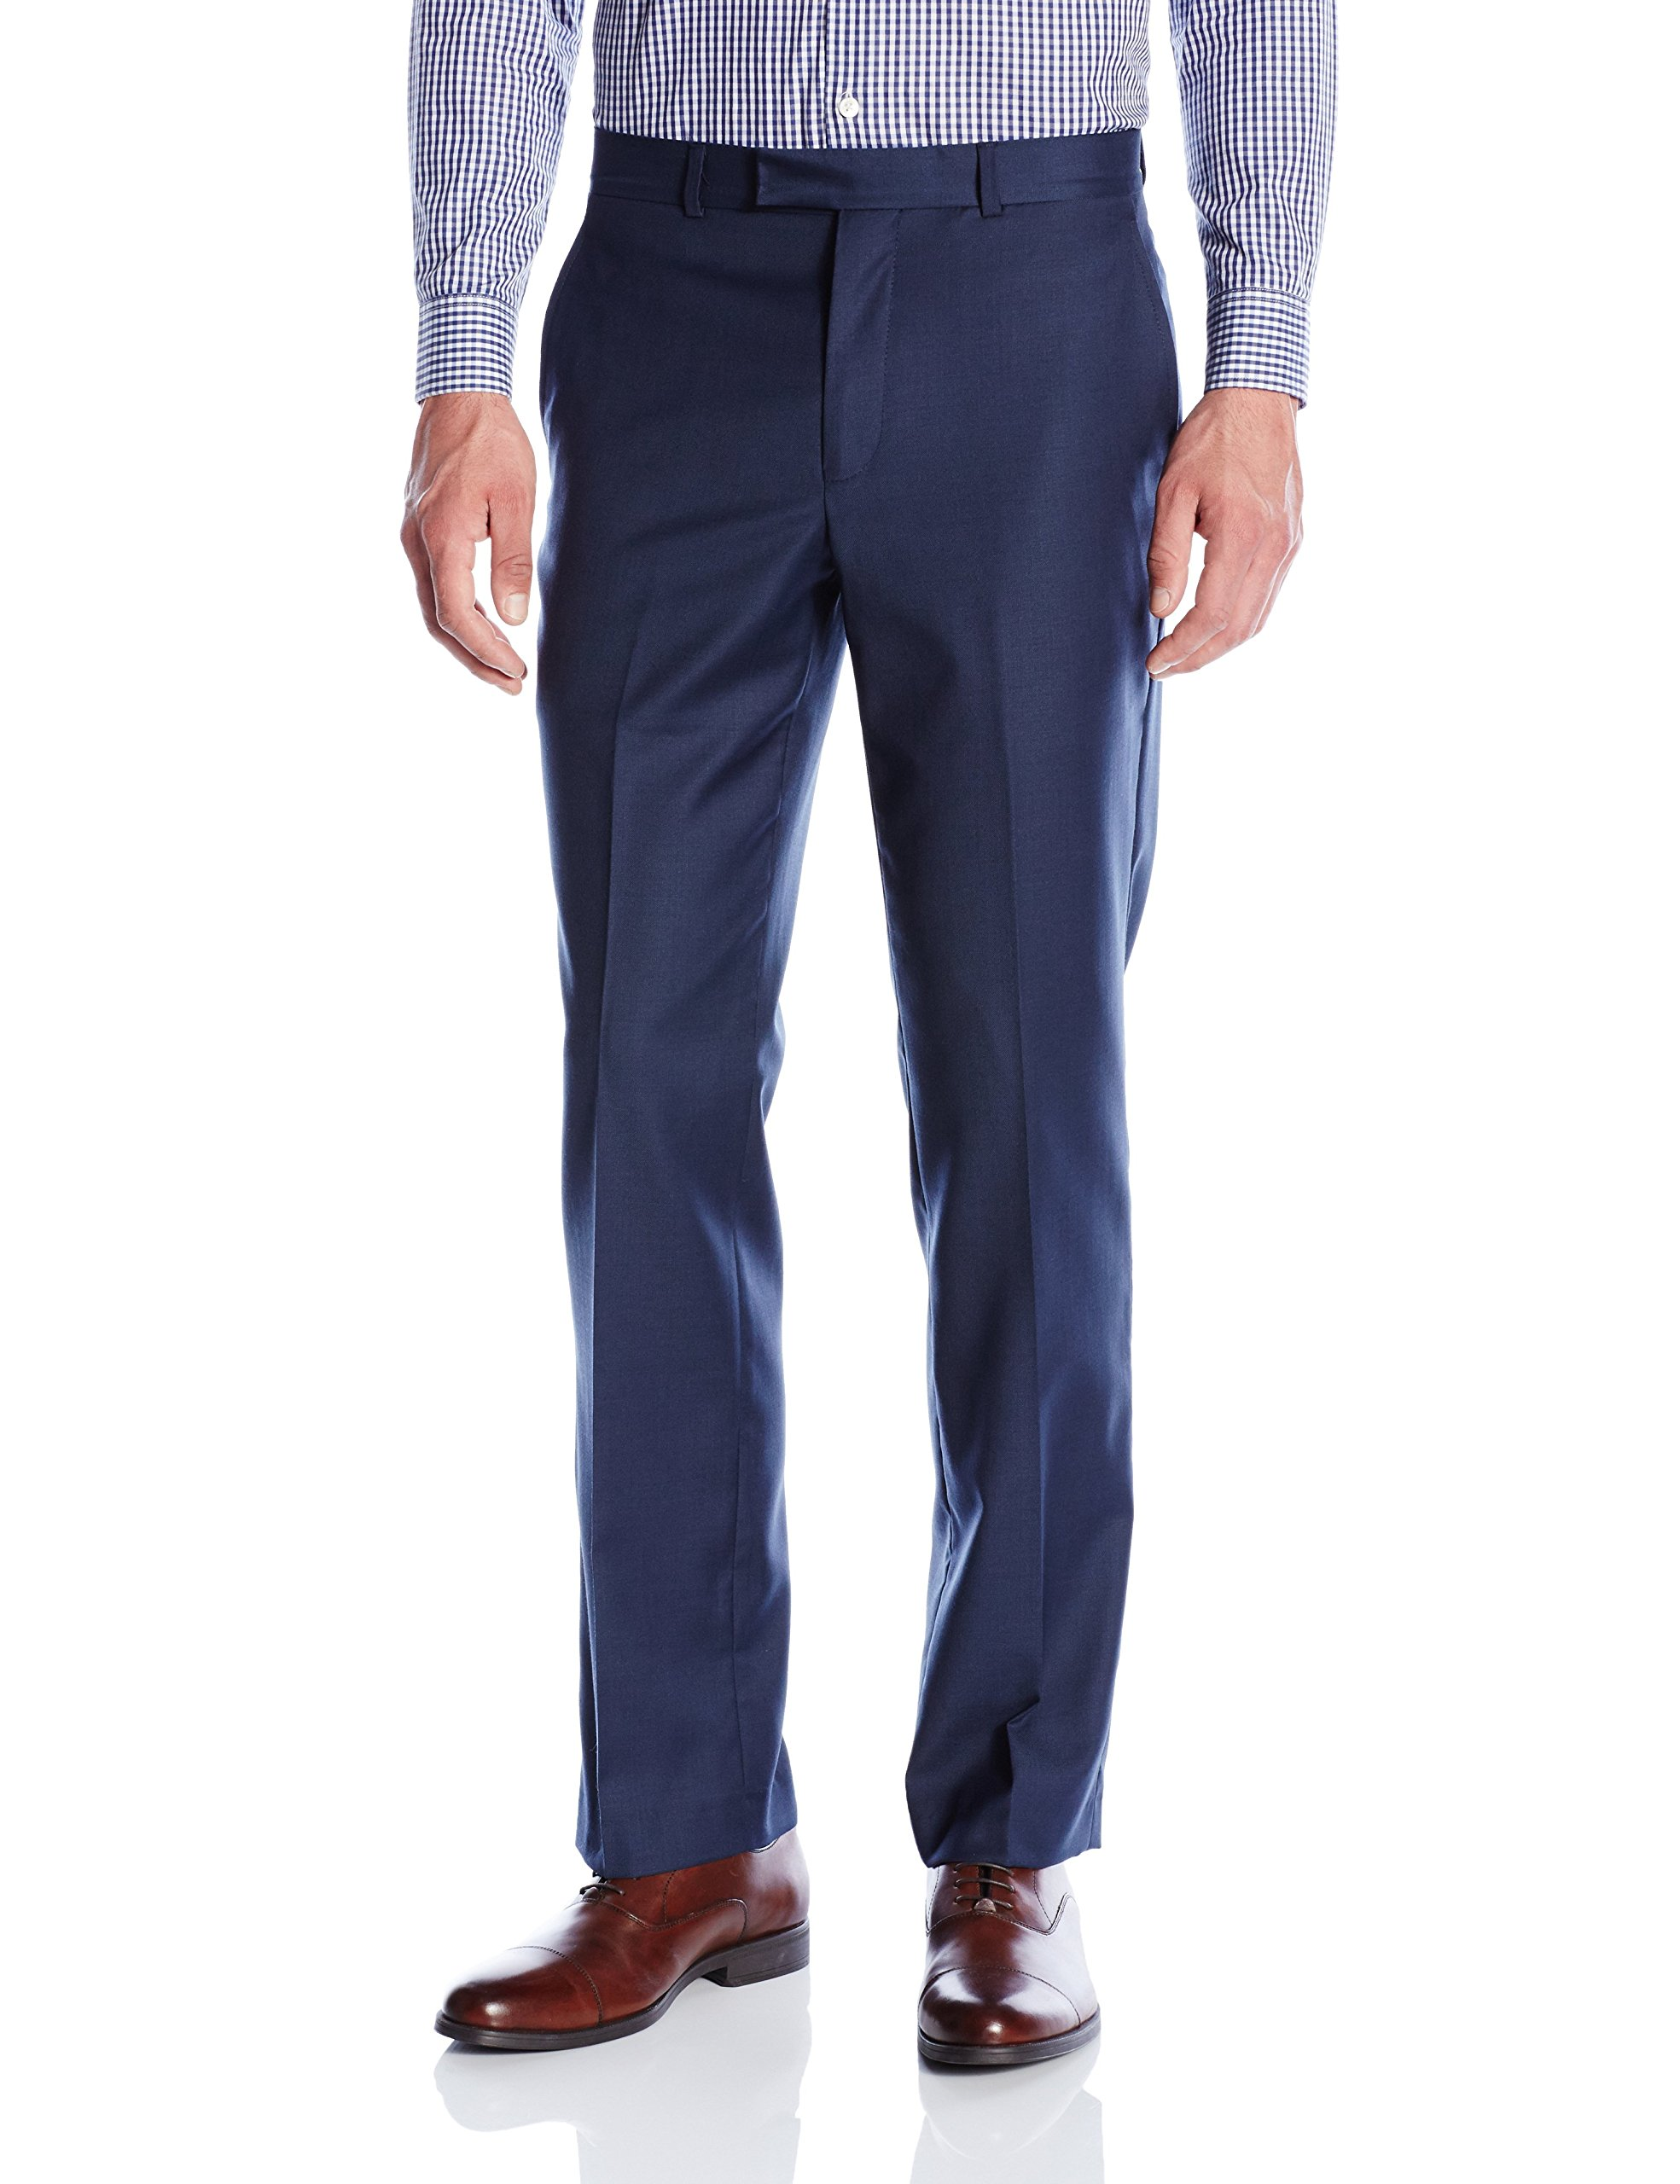 Kenneth Cole New York Men's Performance Wool Suit Separate (Blazer and Pant), Blue Pant, 30W x 30L